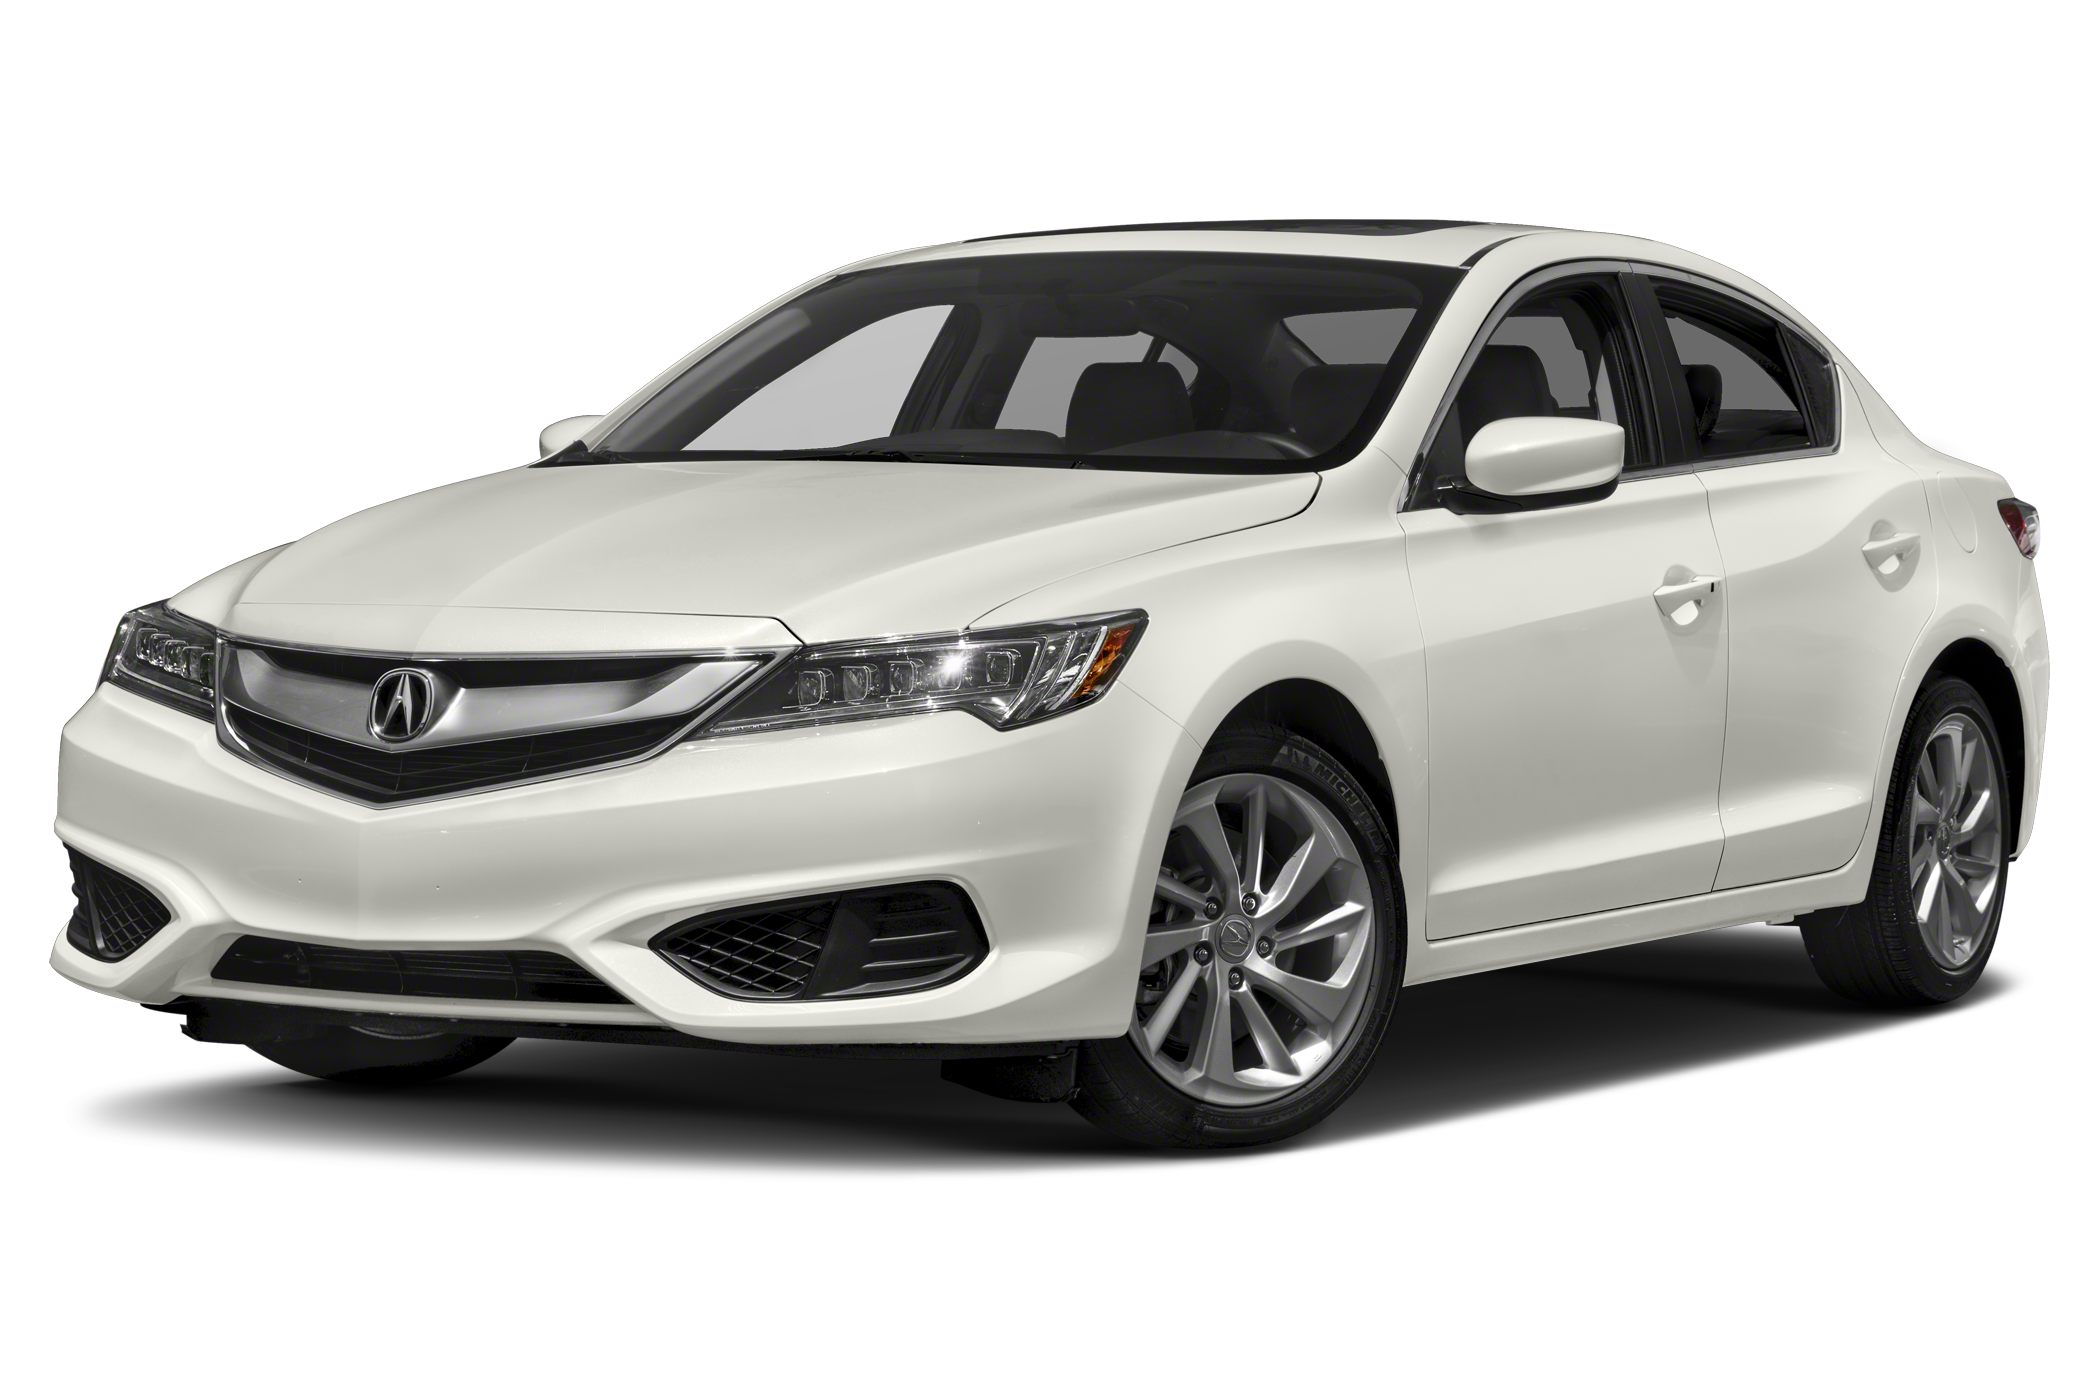 2017 Acura ILX Base Call us now At Herb Connolly Acura of Framingham YOURE 1 This 2017 ILX is